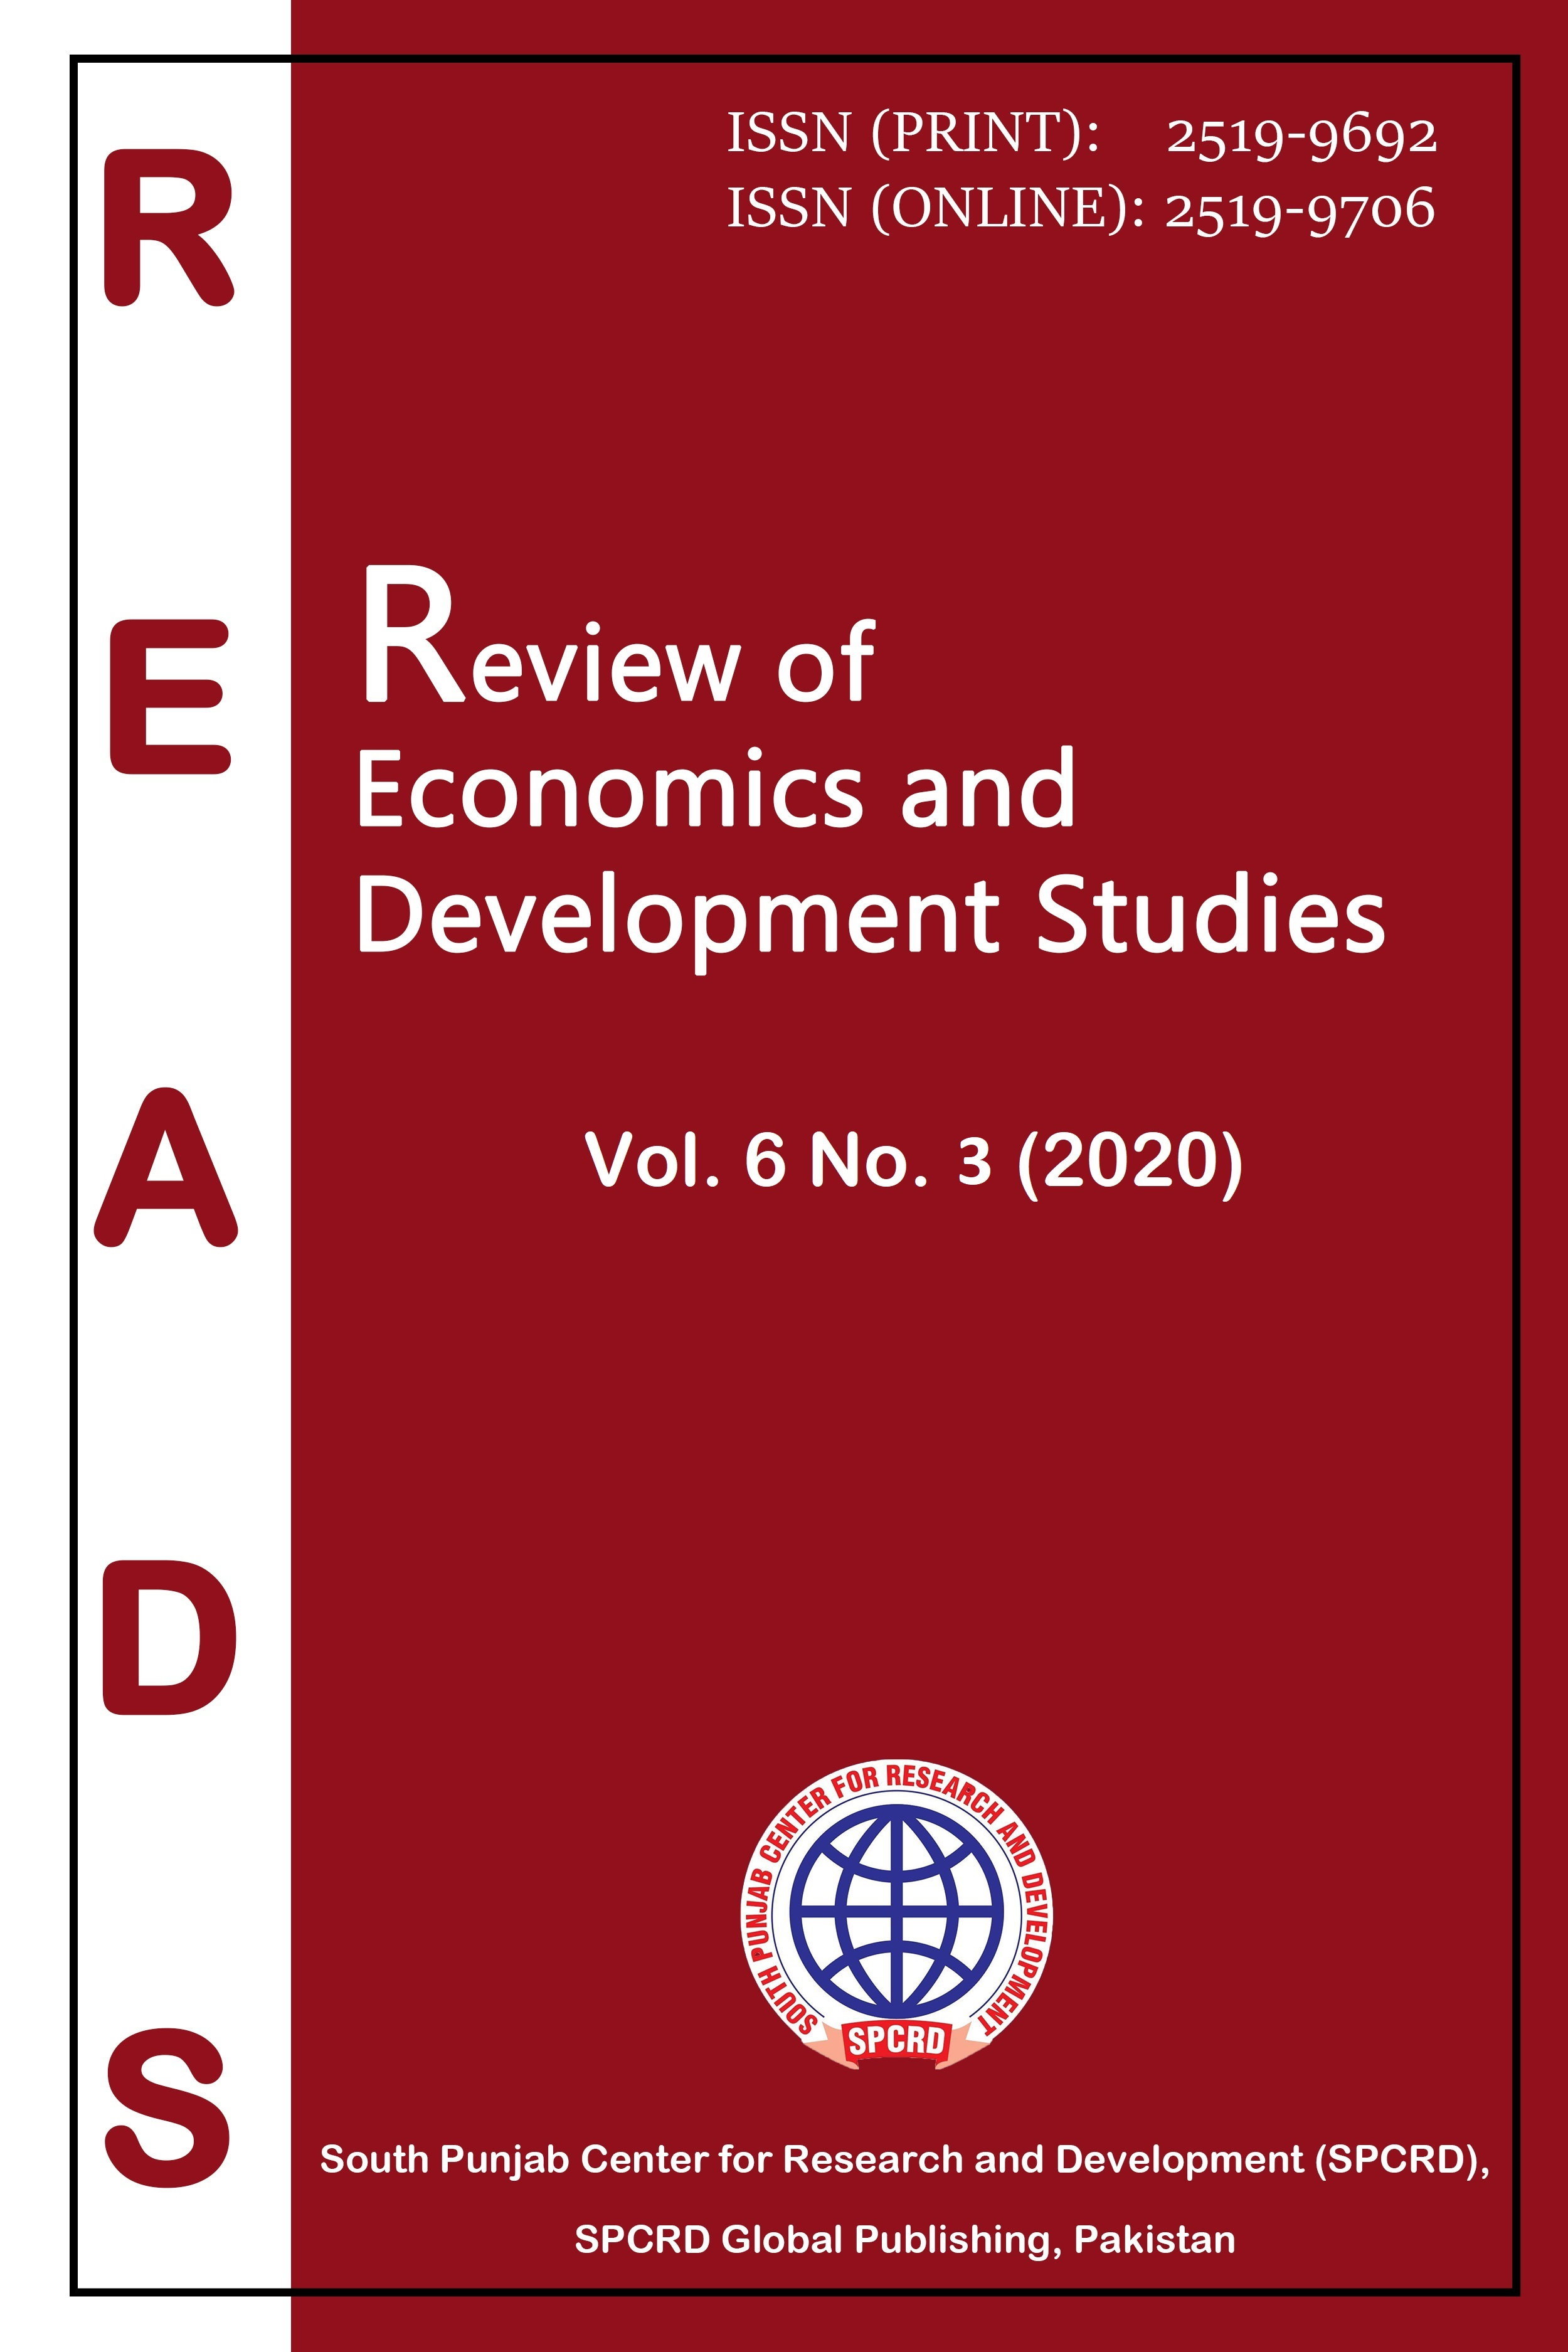 View Vol. 6 No. 3 (2020): Review of Economics and Development Studies (READS)